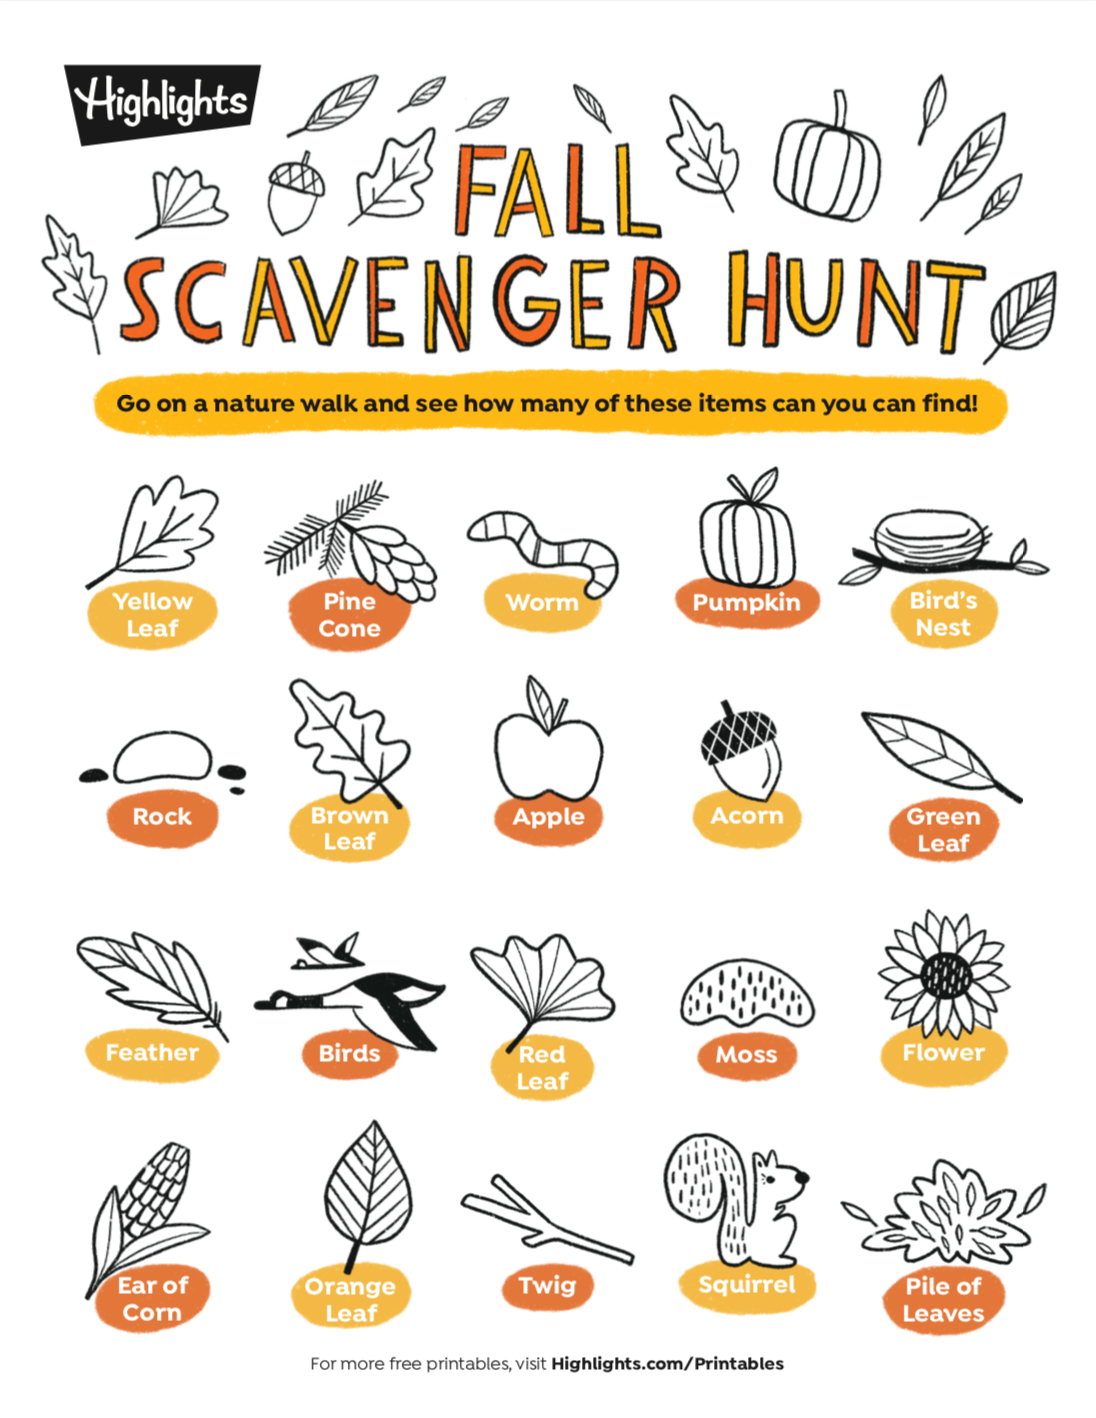 Fall Scavenger Hunt Printable